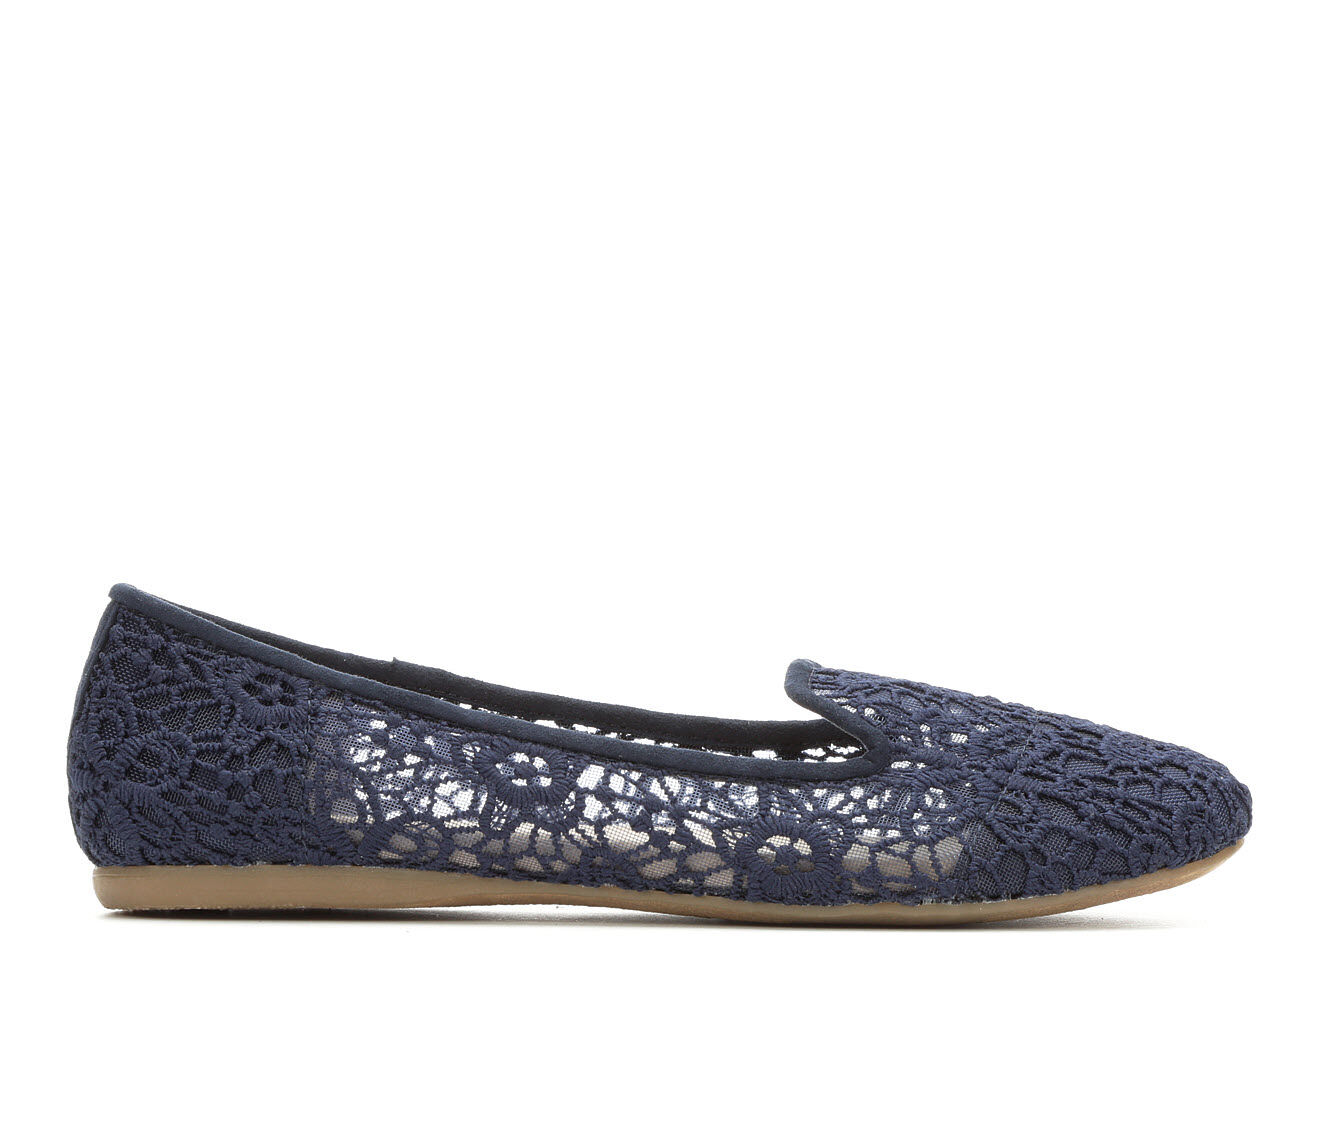 Women's Jellypop Cassian Flats Navy Lace